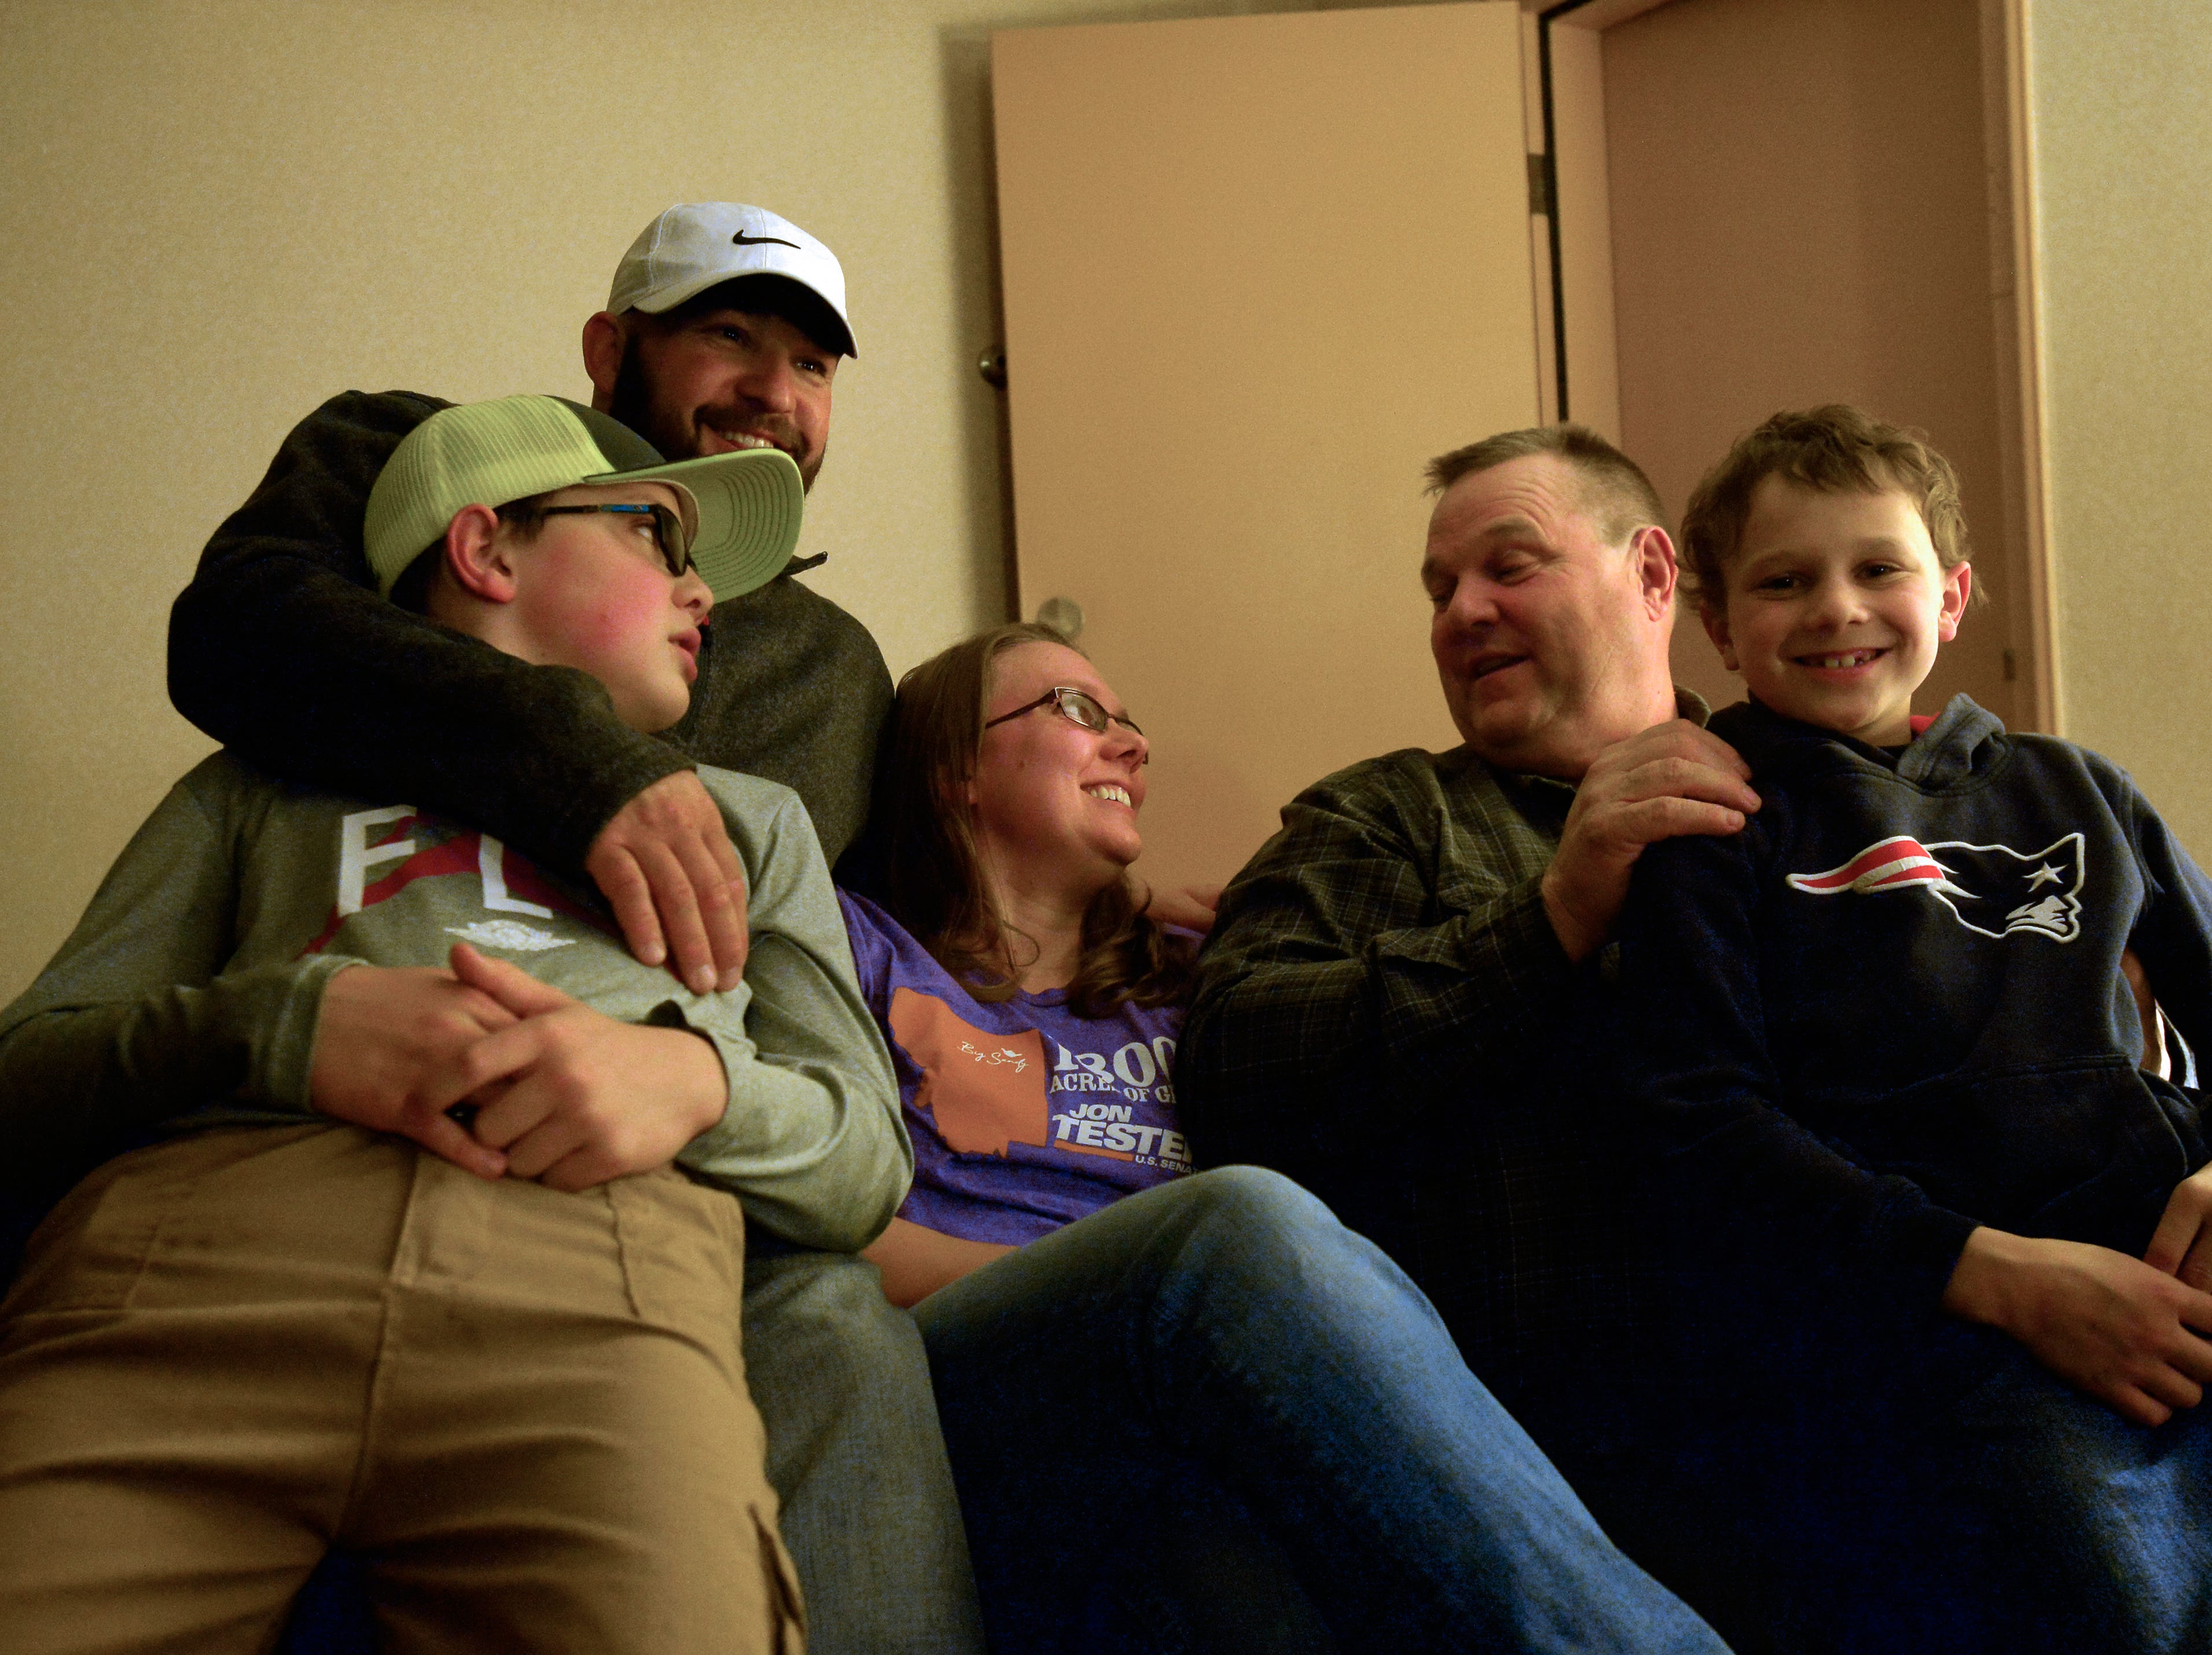 Jon Tester sits with his daughter and grandchildren in a room at the Holiday Inn in Great Falls on Tuesday night as they wait for election night results.